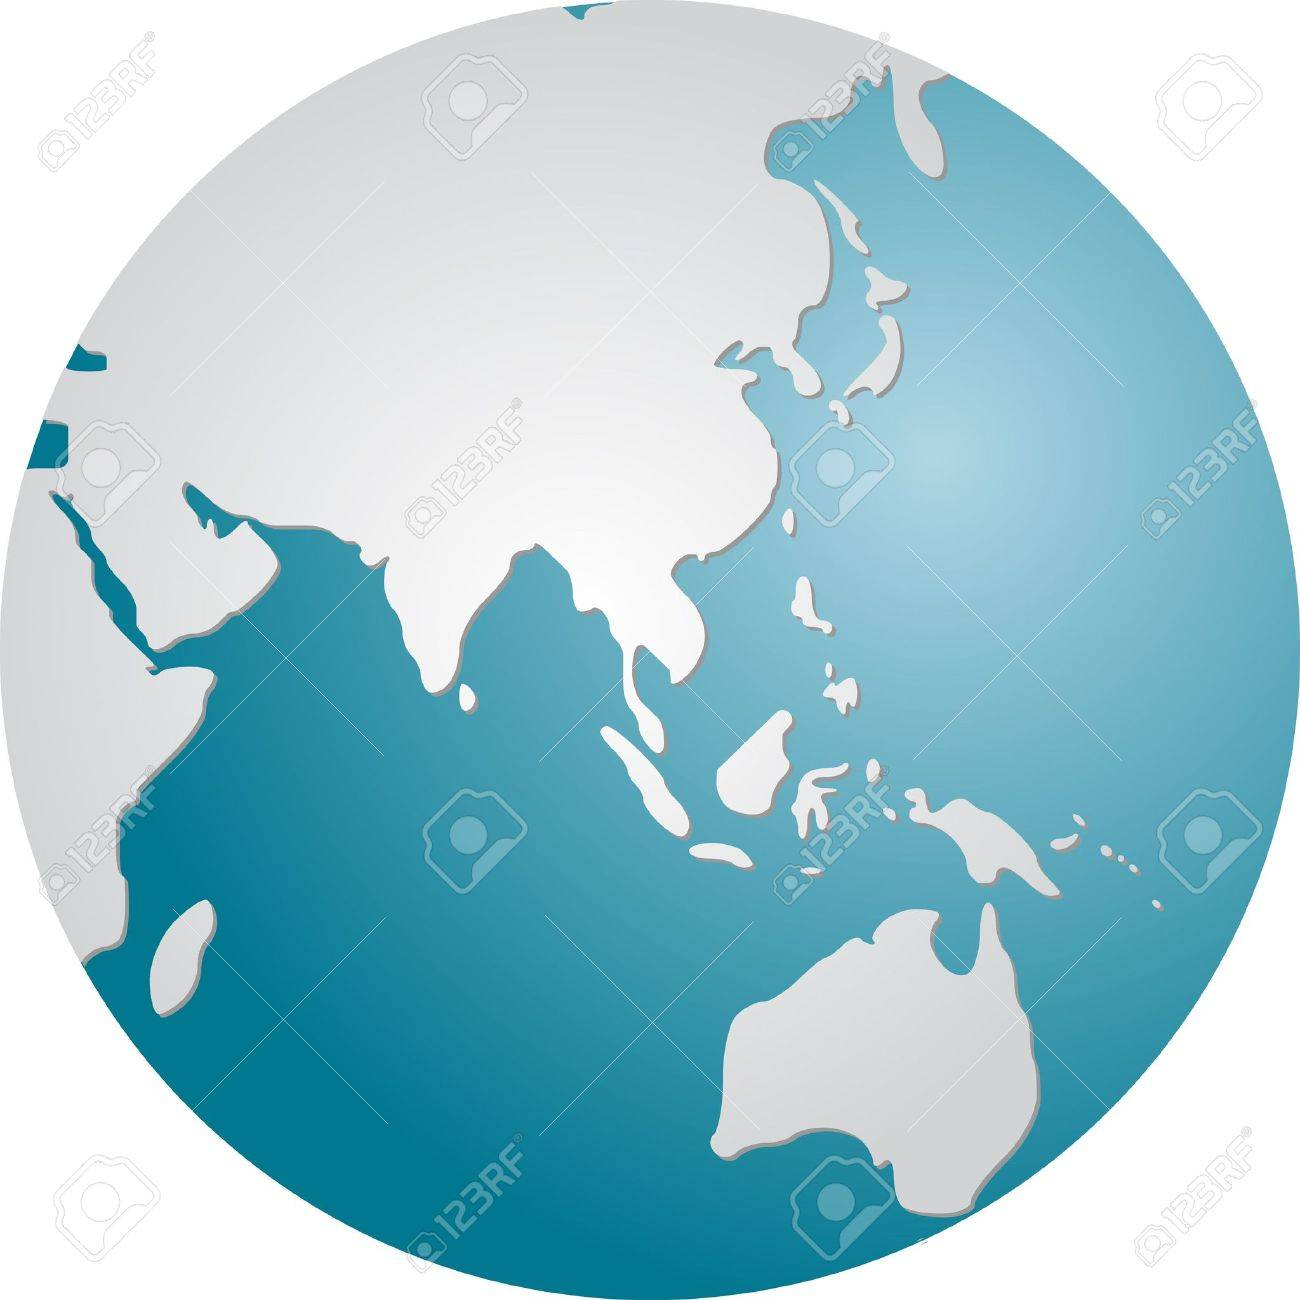 Globe map illustration of the Asia Pacific Stock Photo - 3857035